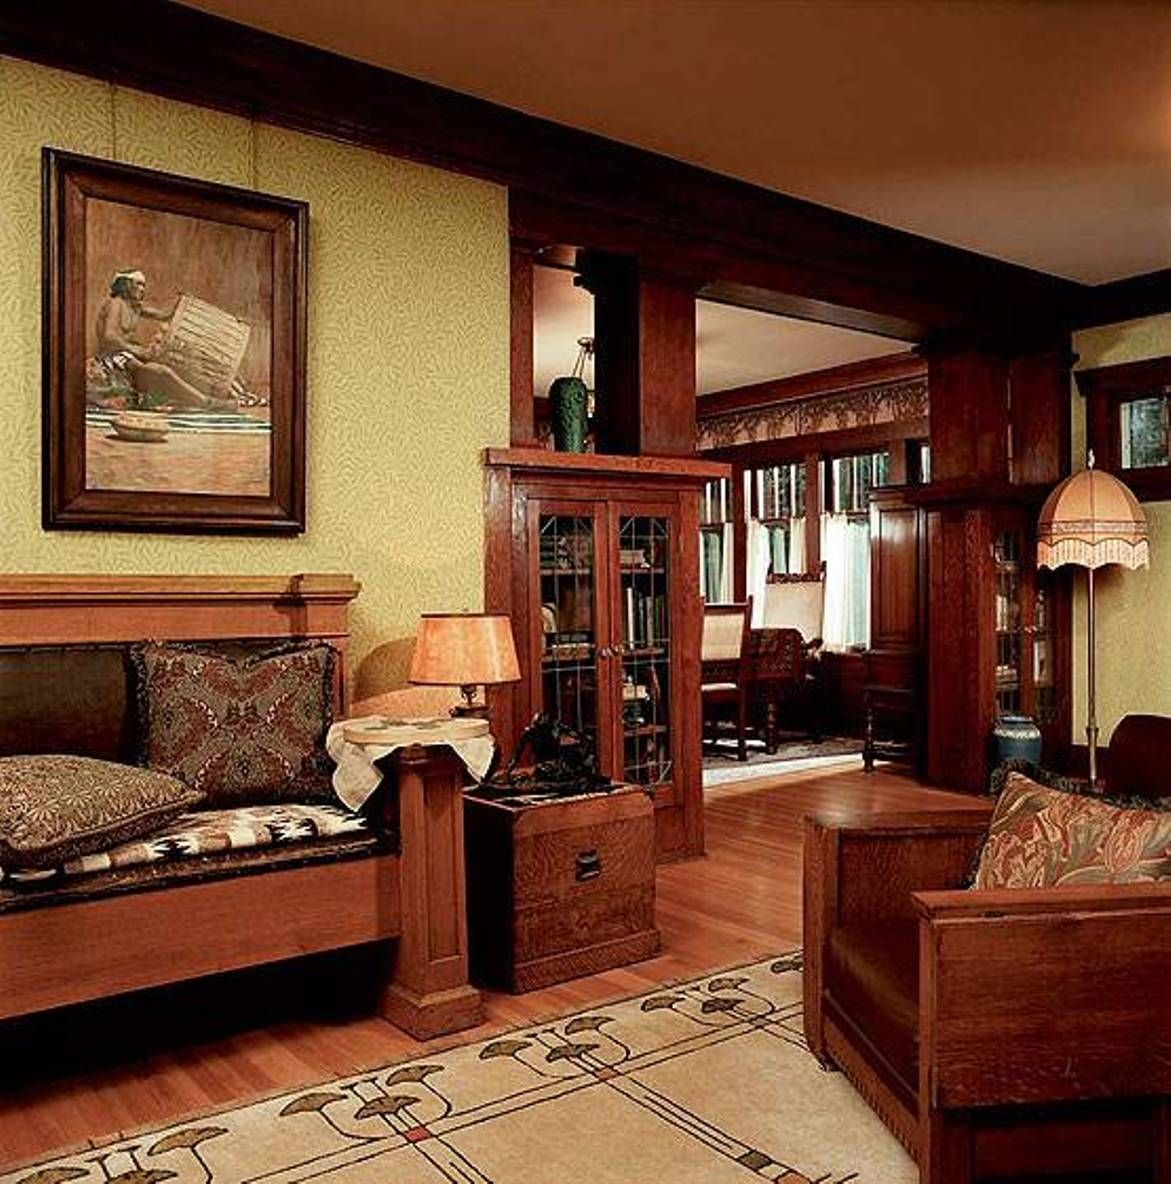 Home design and decor craftsman interior decorating Bungalow interior design photos